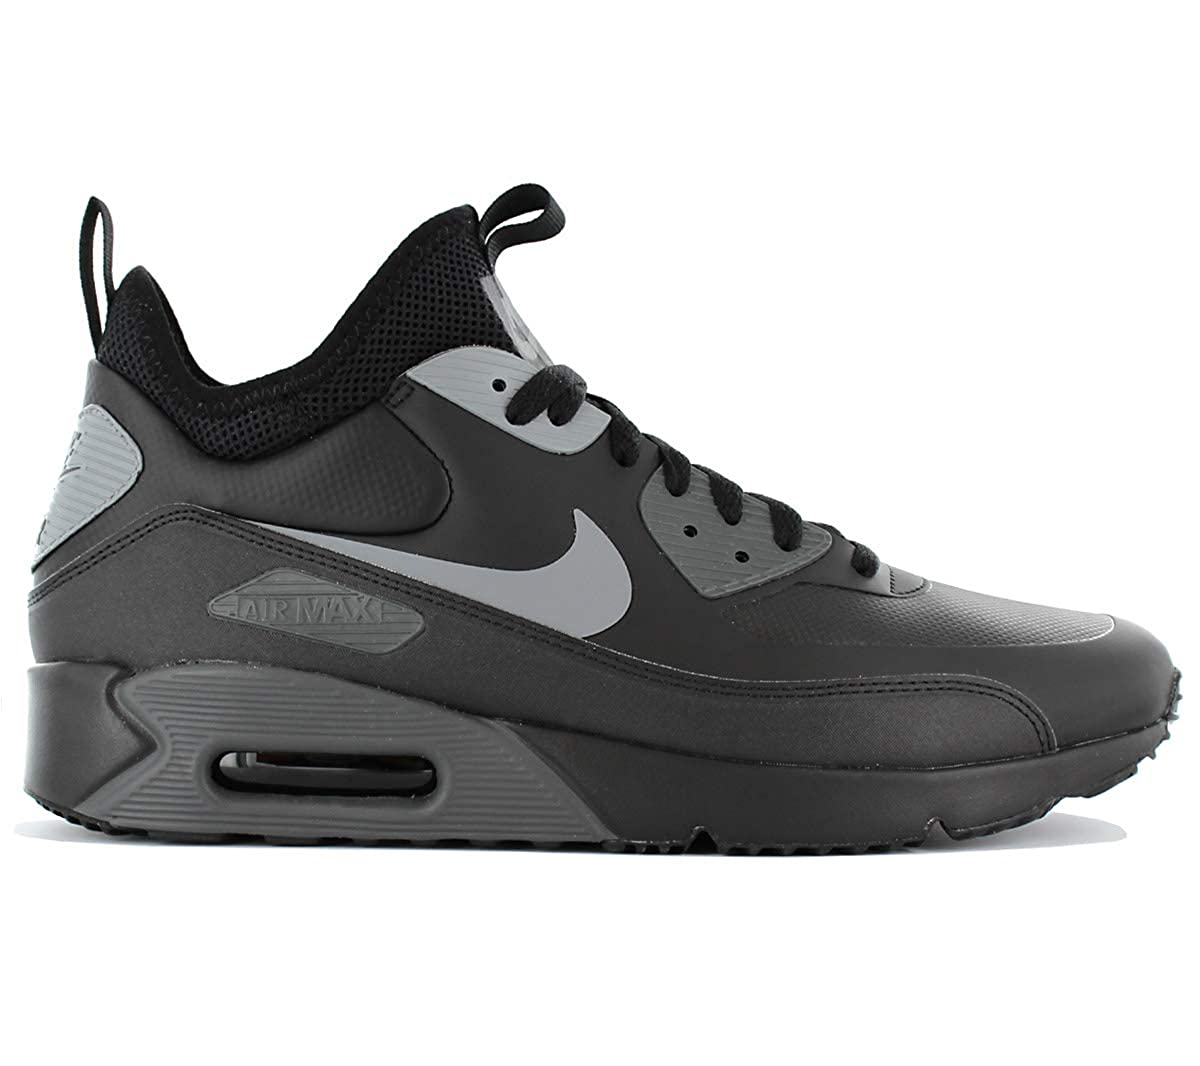 Nike Air Max 90 Ultra Mid Win 924458002 Color Black Grey